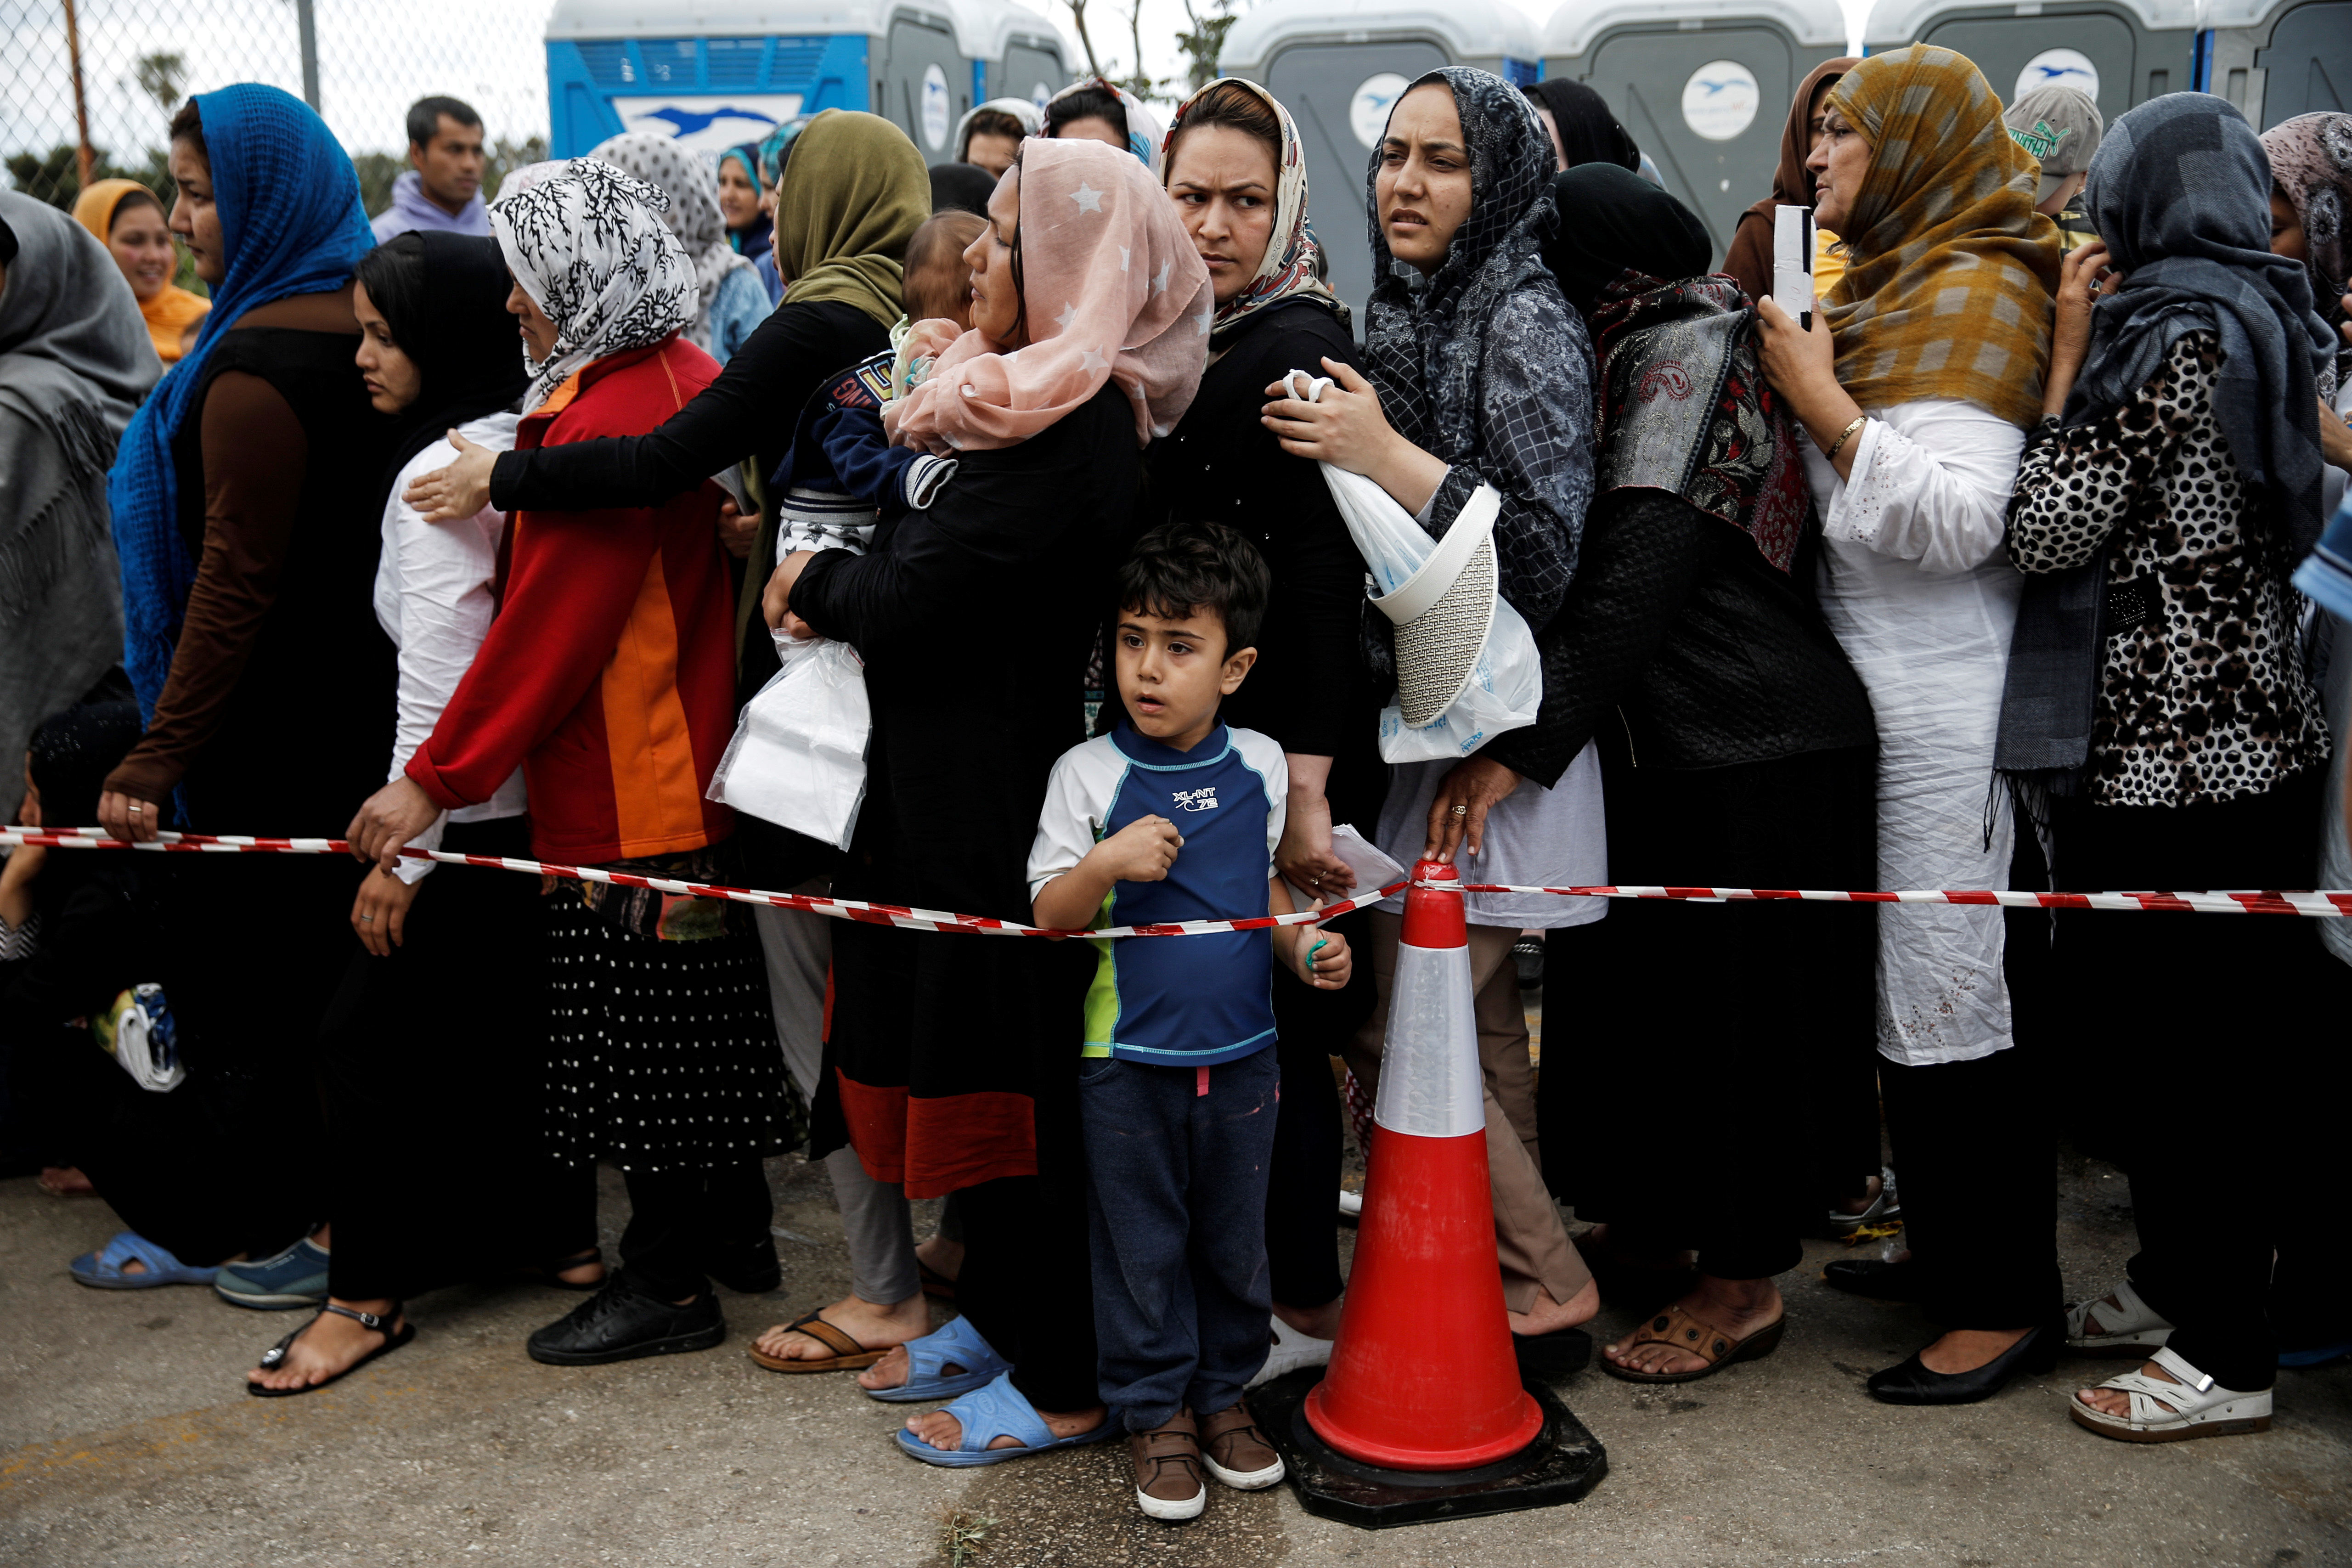 Migrants line up to receive personal hygiene goods distributed by the United Nations High Commissioner for Refugees (UNHCR), outside the main building of the disused Hellenikon airport